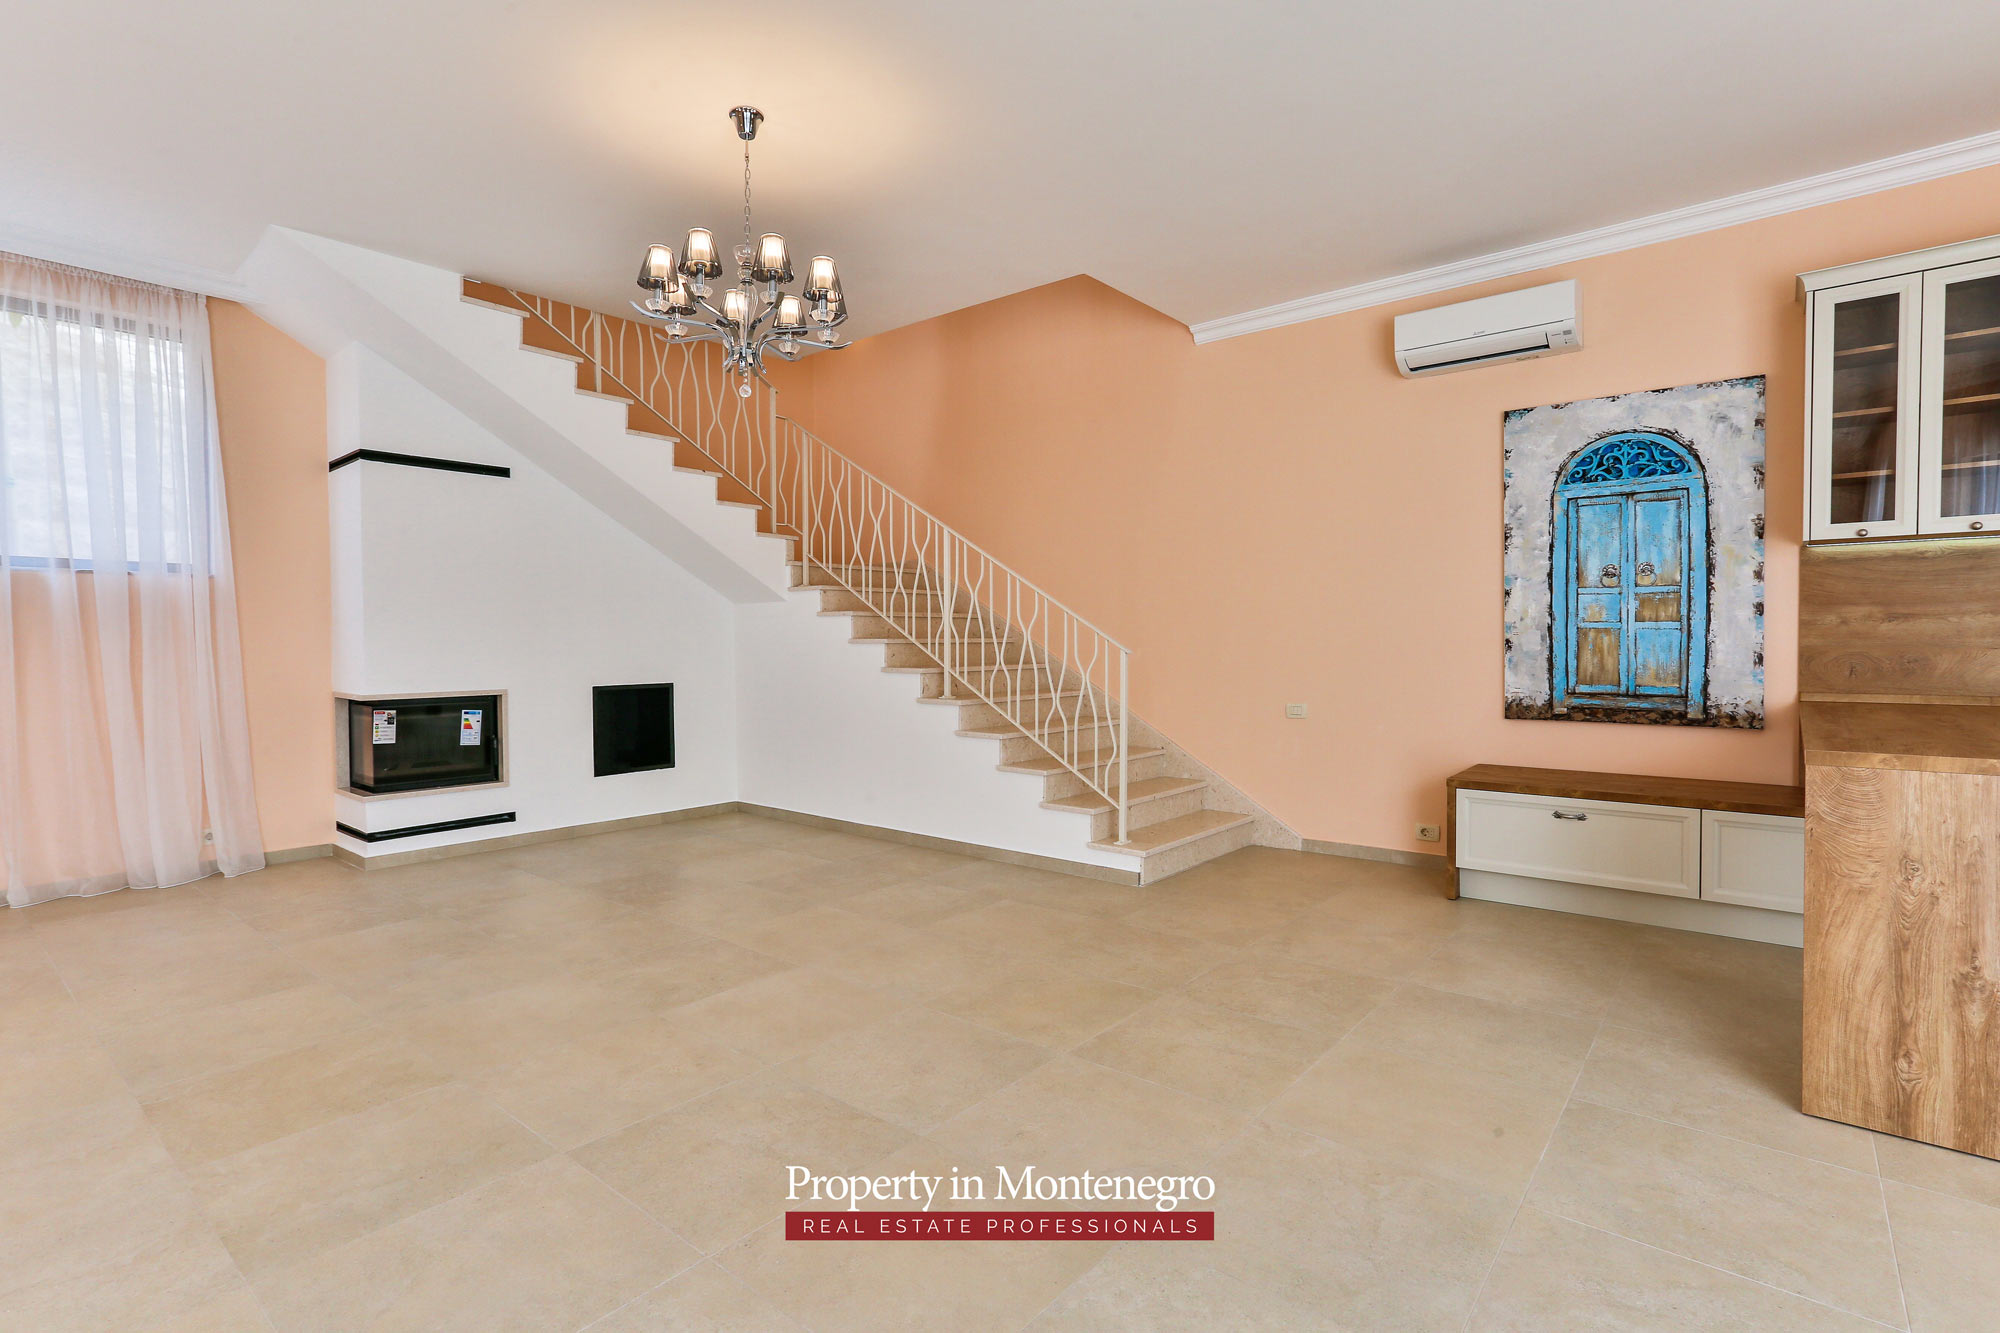 Luxury-villa-with-swimming-pool-for-sale-in-Tivat (1).jpg